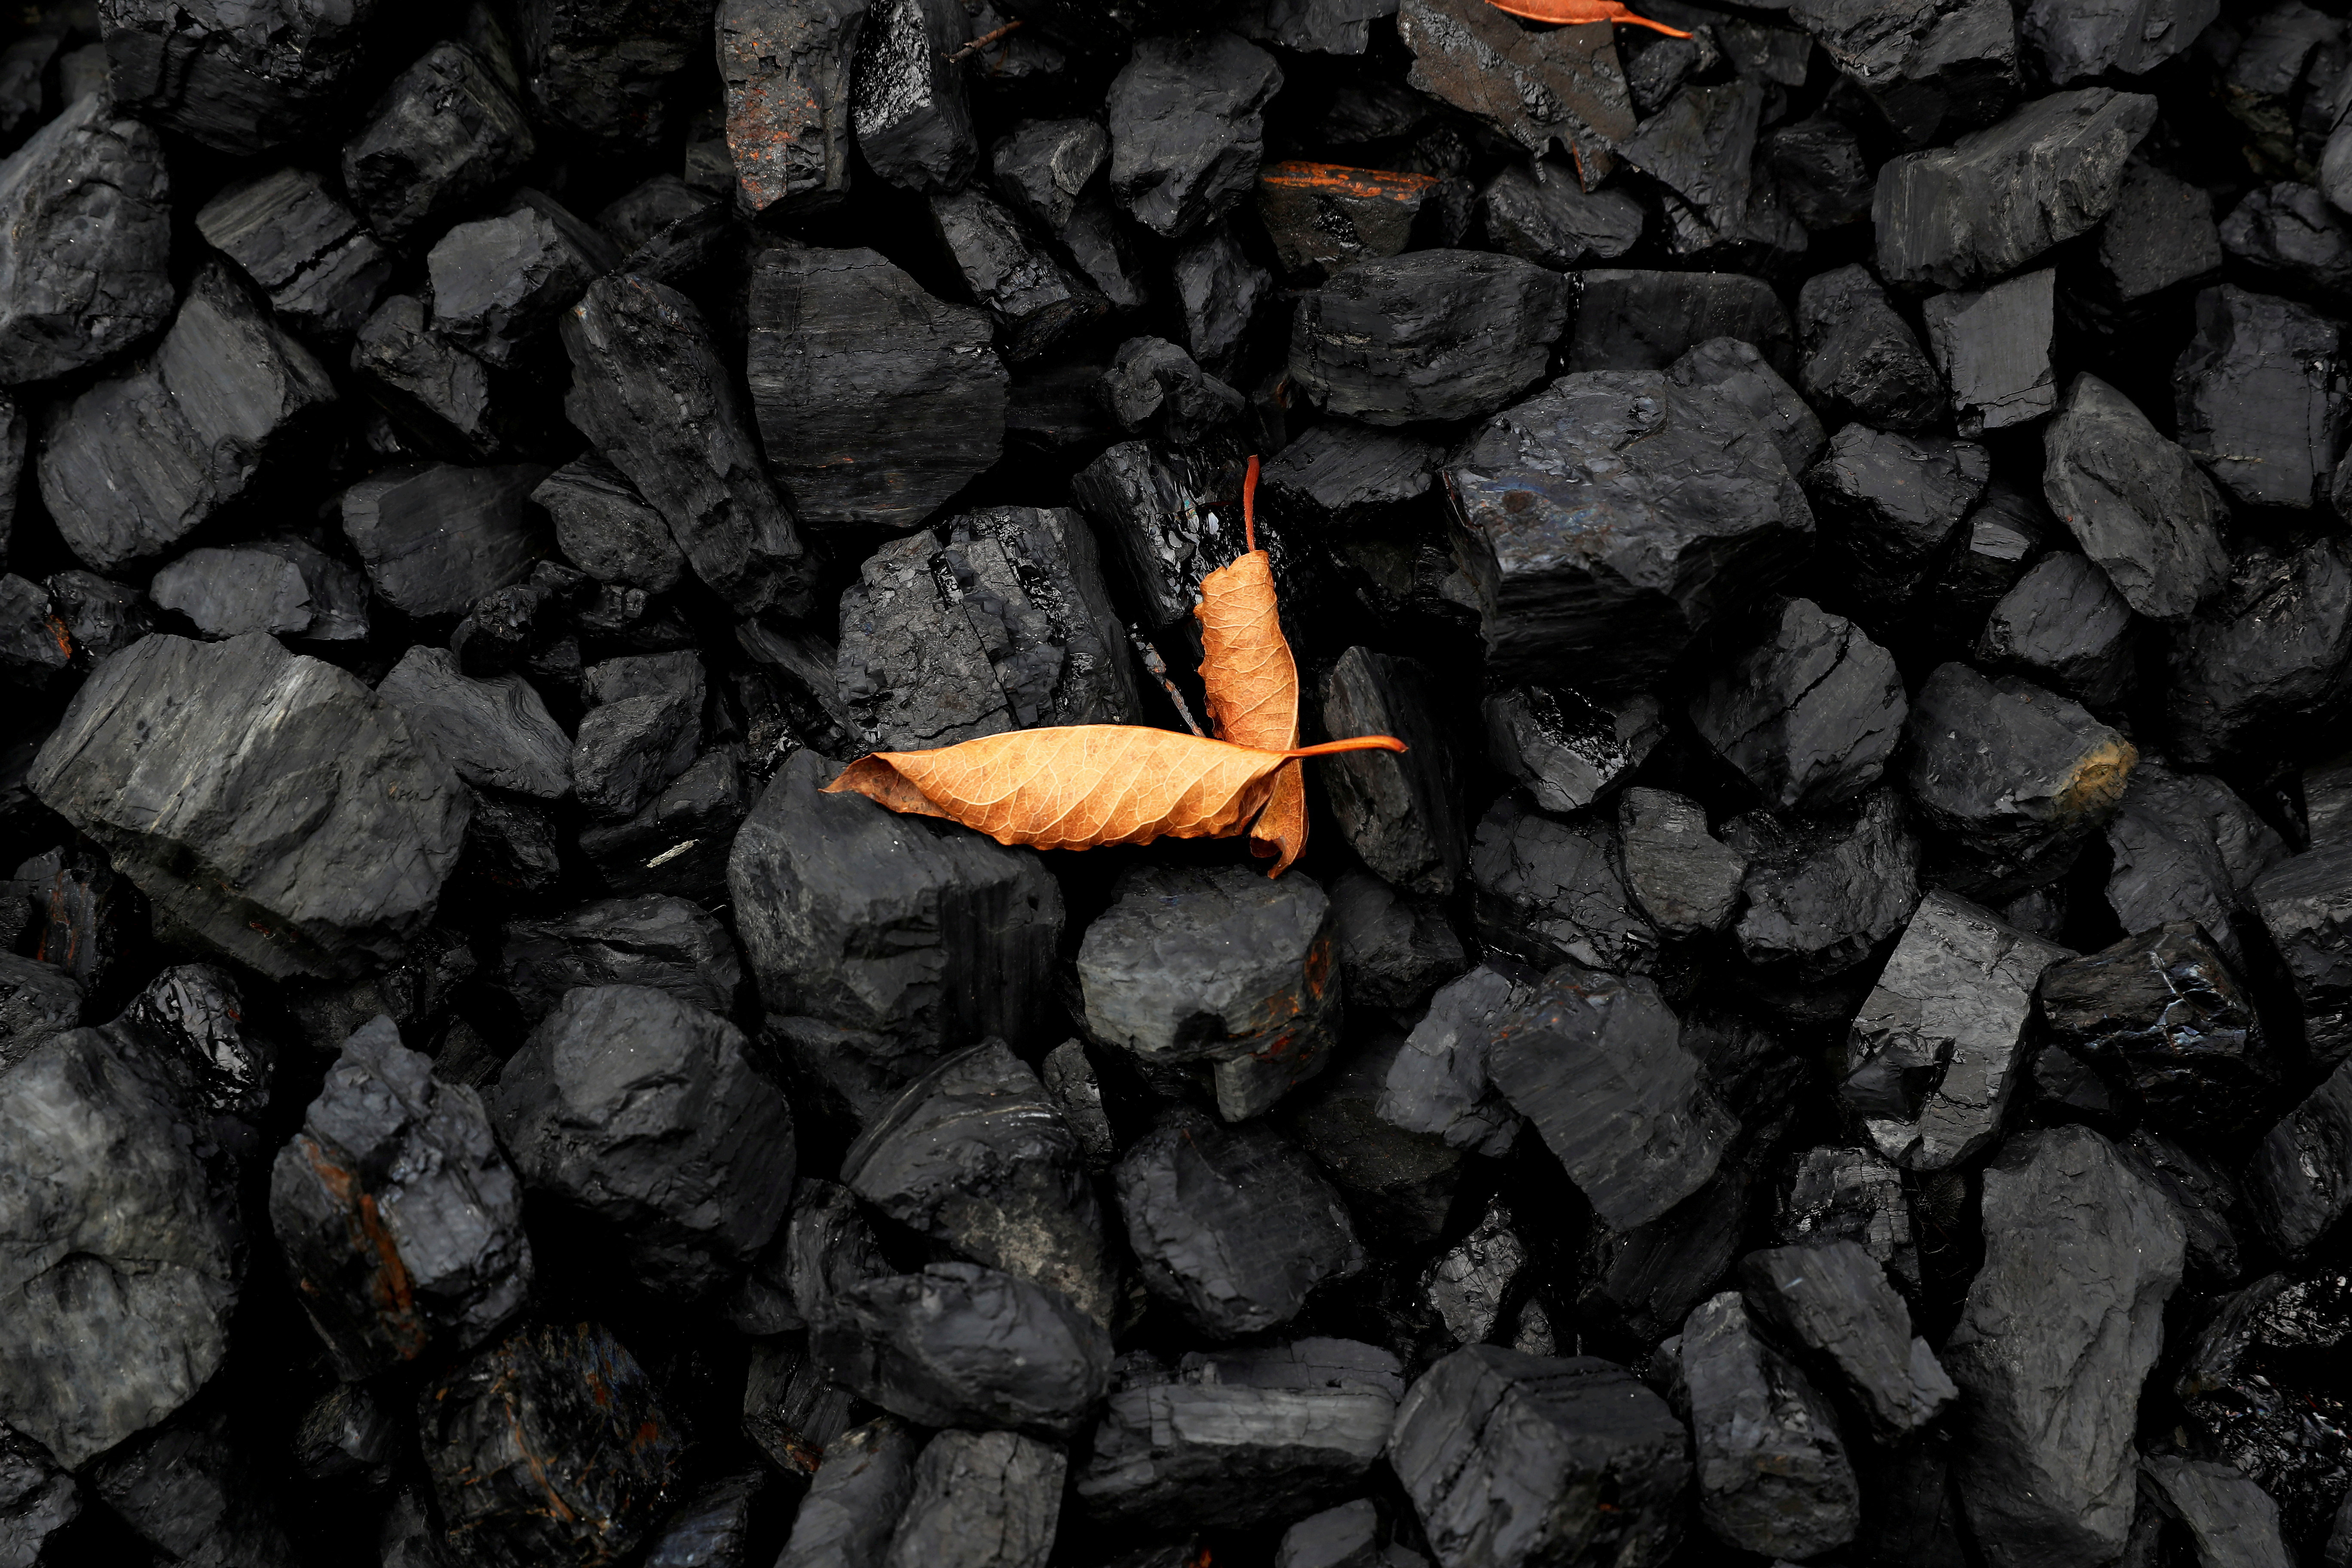 A leaf sits on top of a pile of coal in Youngstown, Ohio, U.S., September 30, 2020. REUTERS/Shannon Stapleton